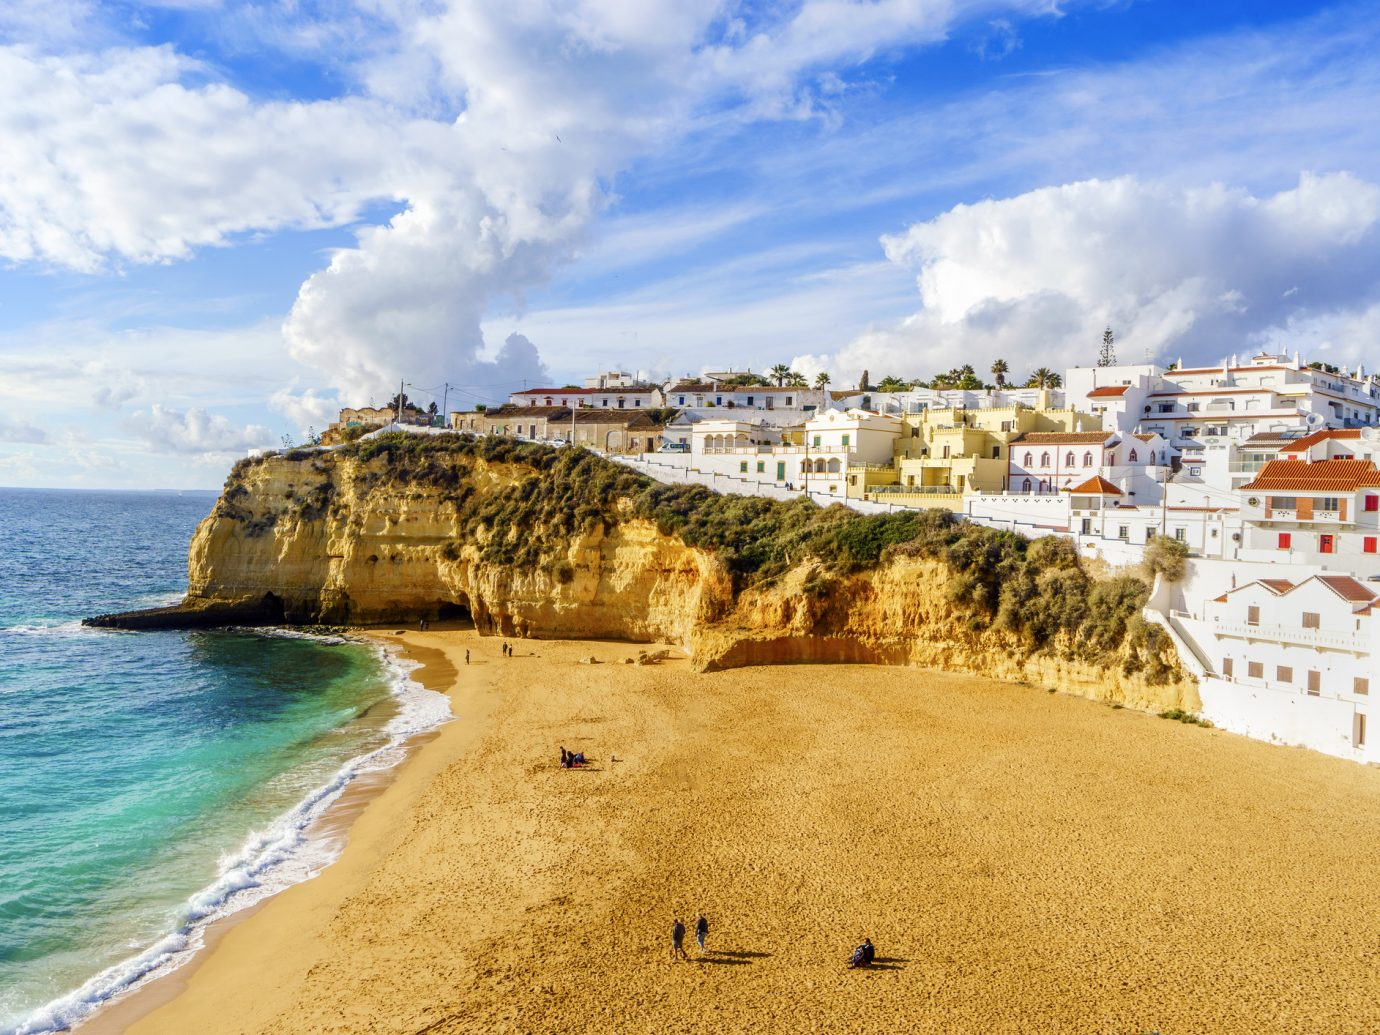 Wide sandy beach between cliffs and in front of charming white architecture in Carvoeiro, Algarve, Portugal